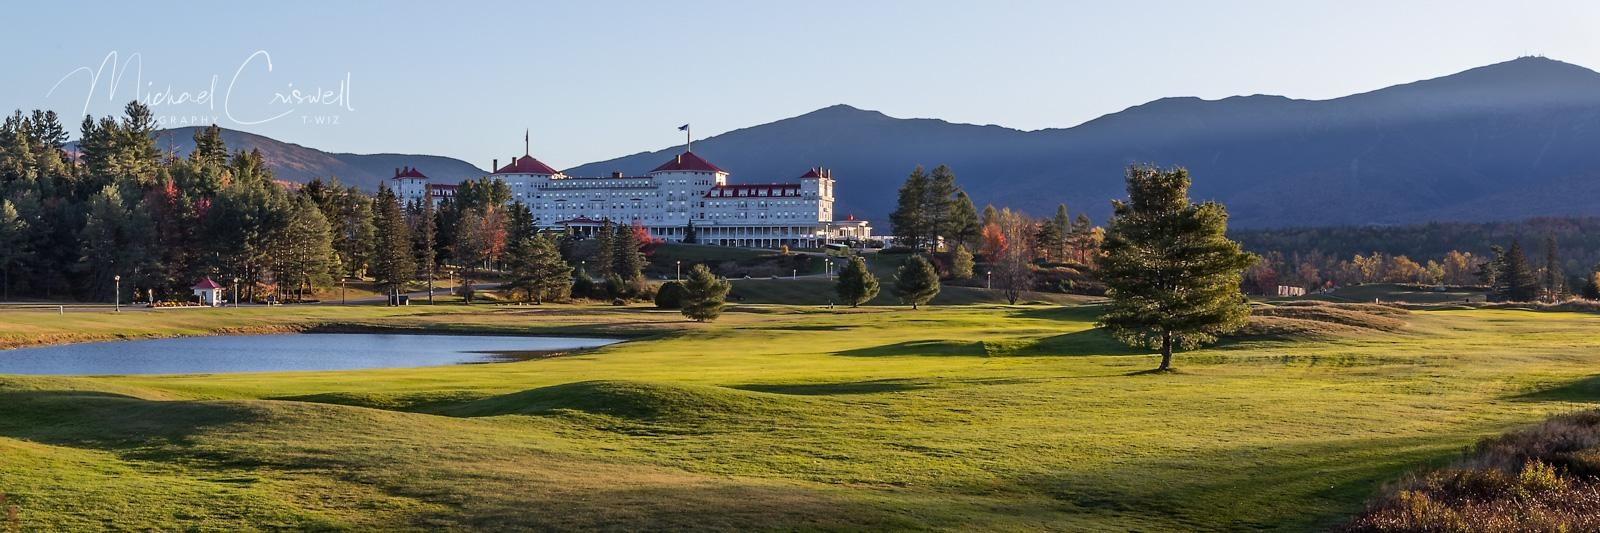 The Omni and Mt Washington